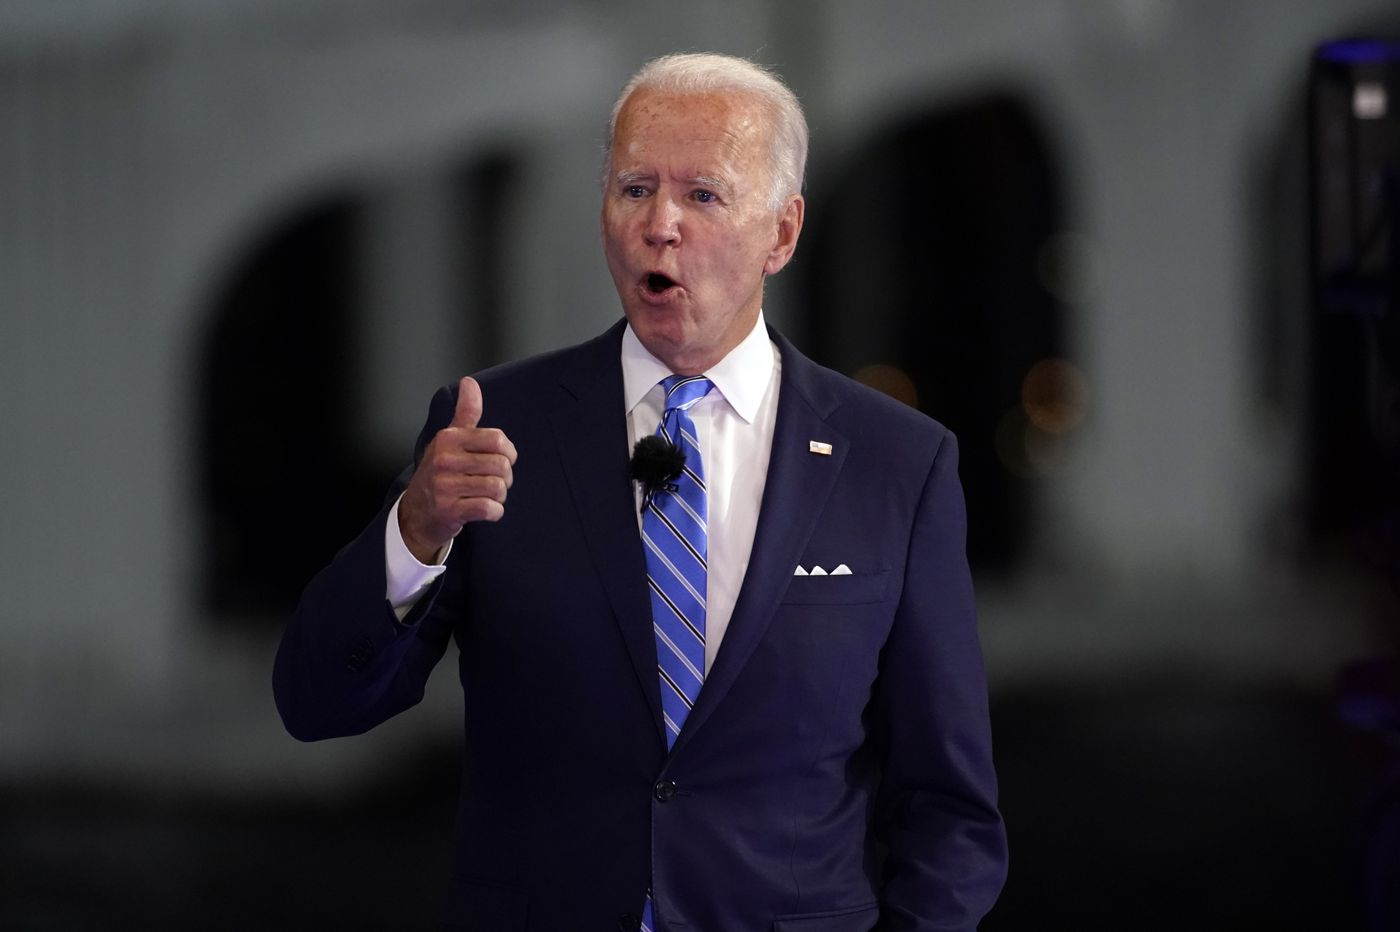 Biden maintains his lead in latest Pennsylvania polls as time is running short for Trump